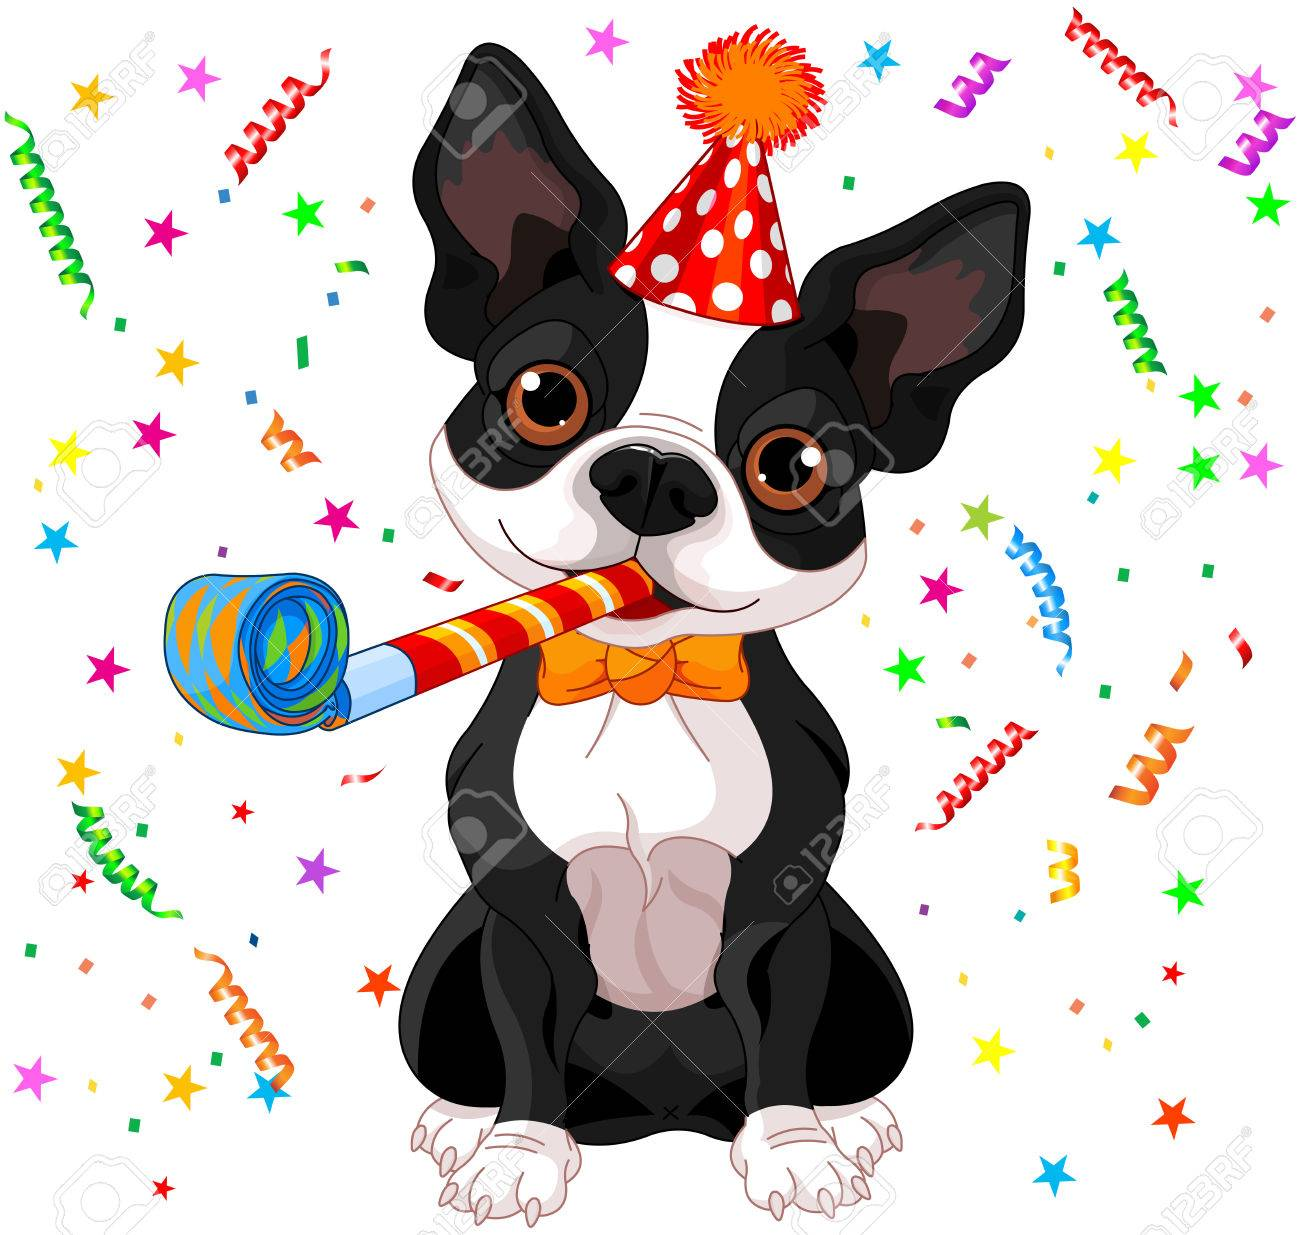 Avoir des regrets... - Page 4 35588778-illustration-of-cute-boston-terrier-celebrating